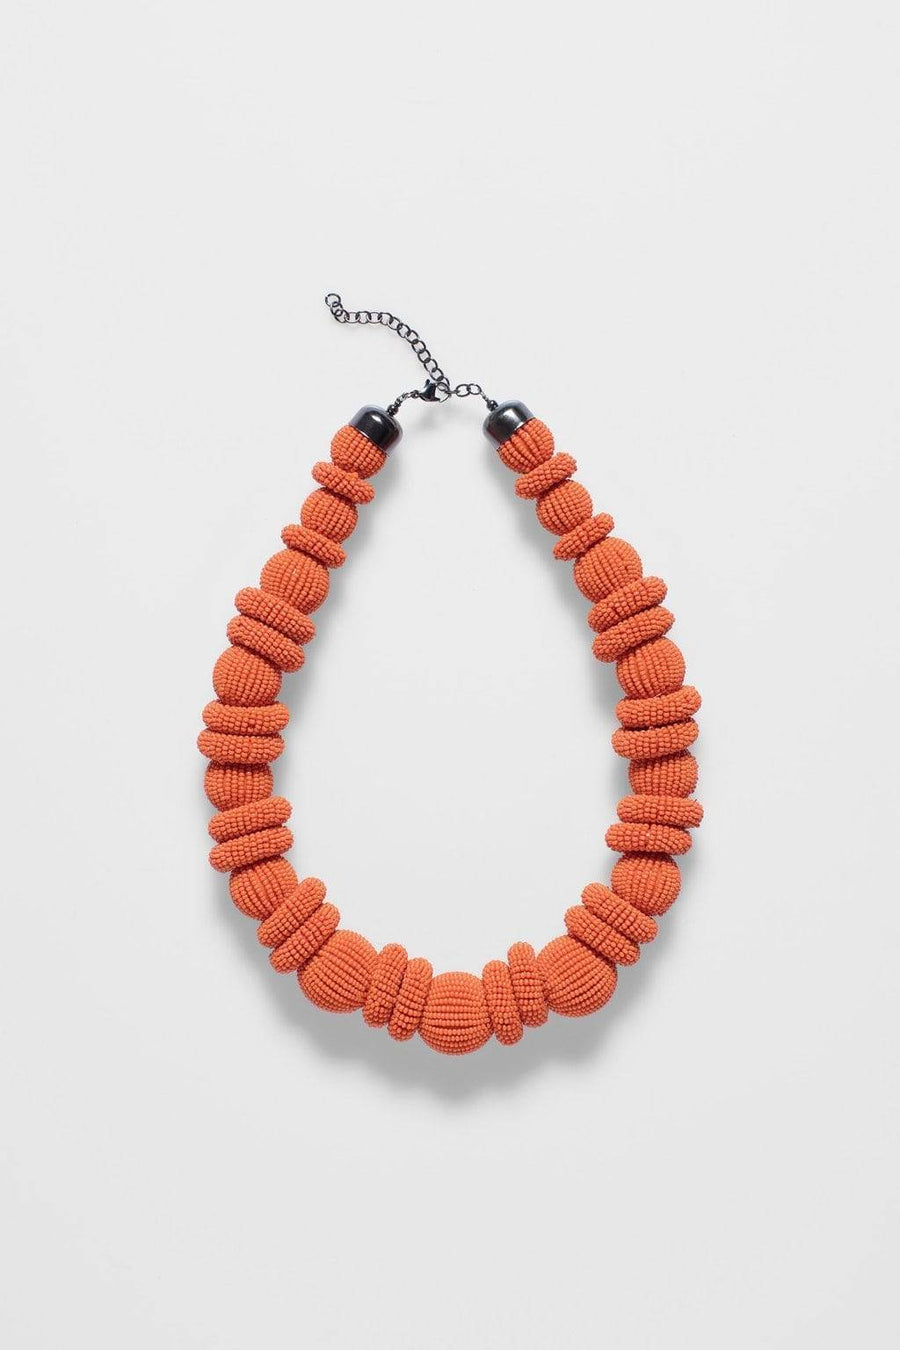 Franja Neckpiece - South of London